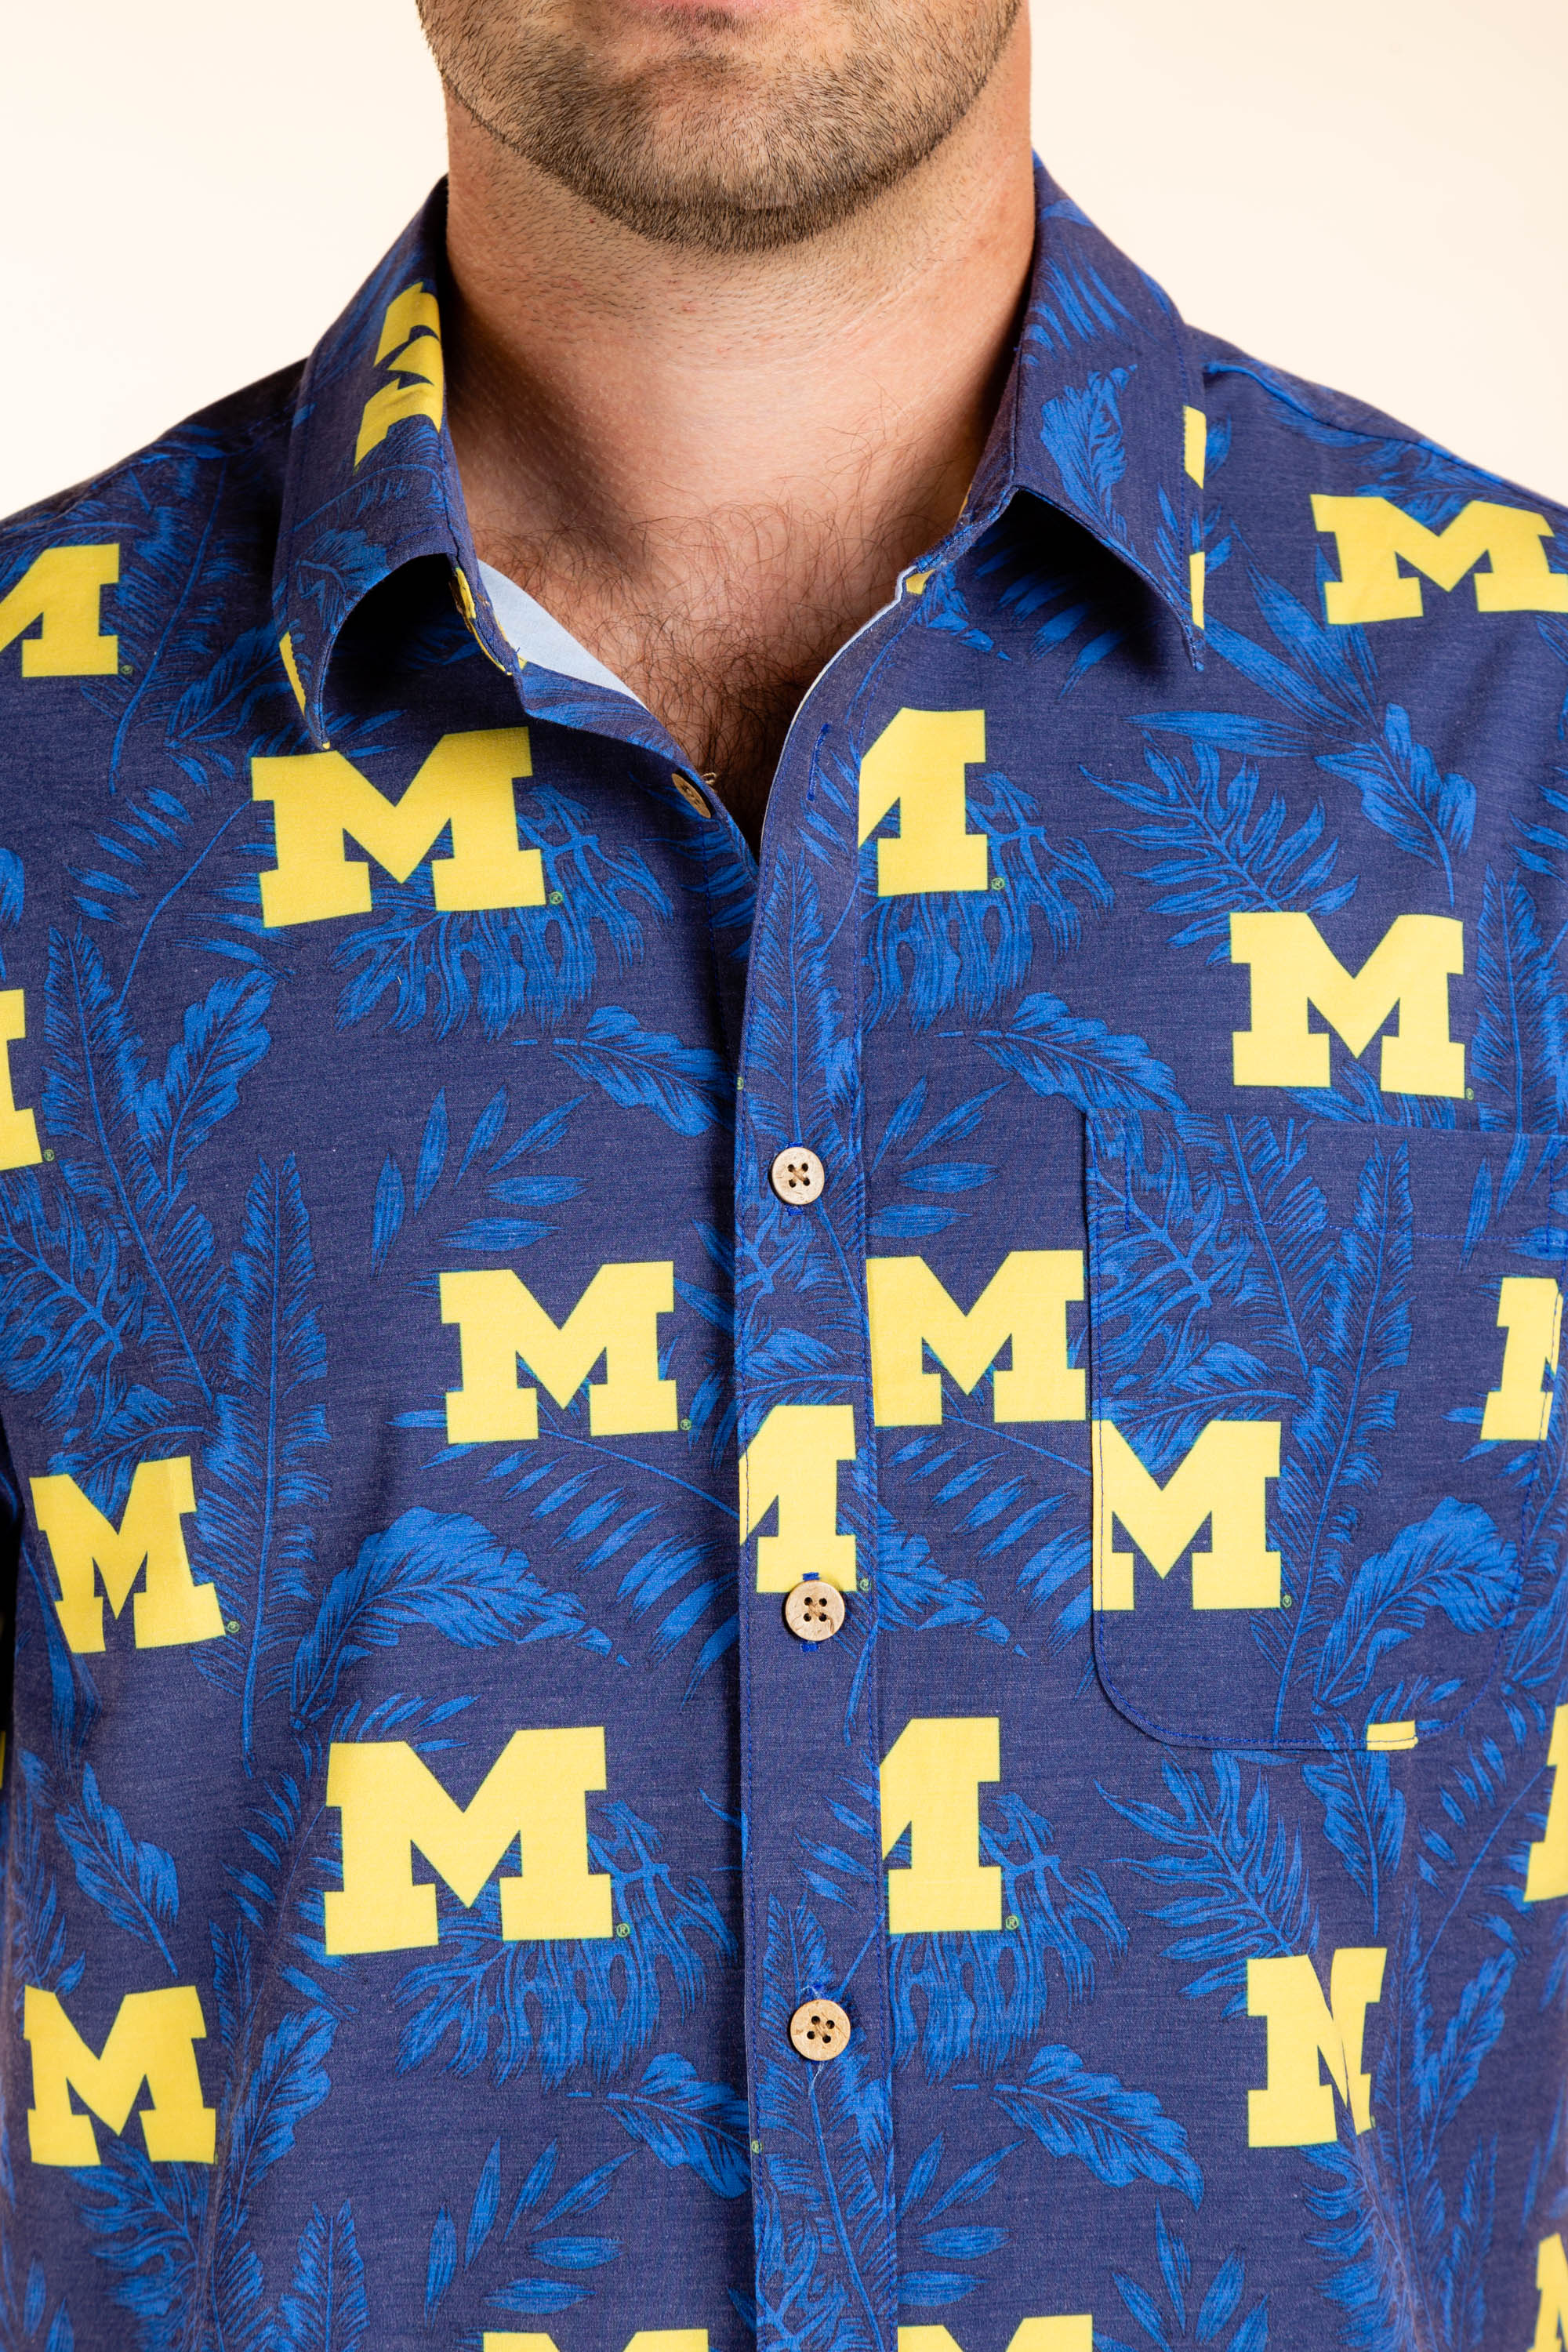 University of Michigan Game Day Tailgating Shirt